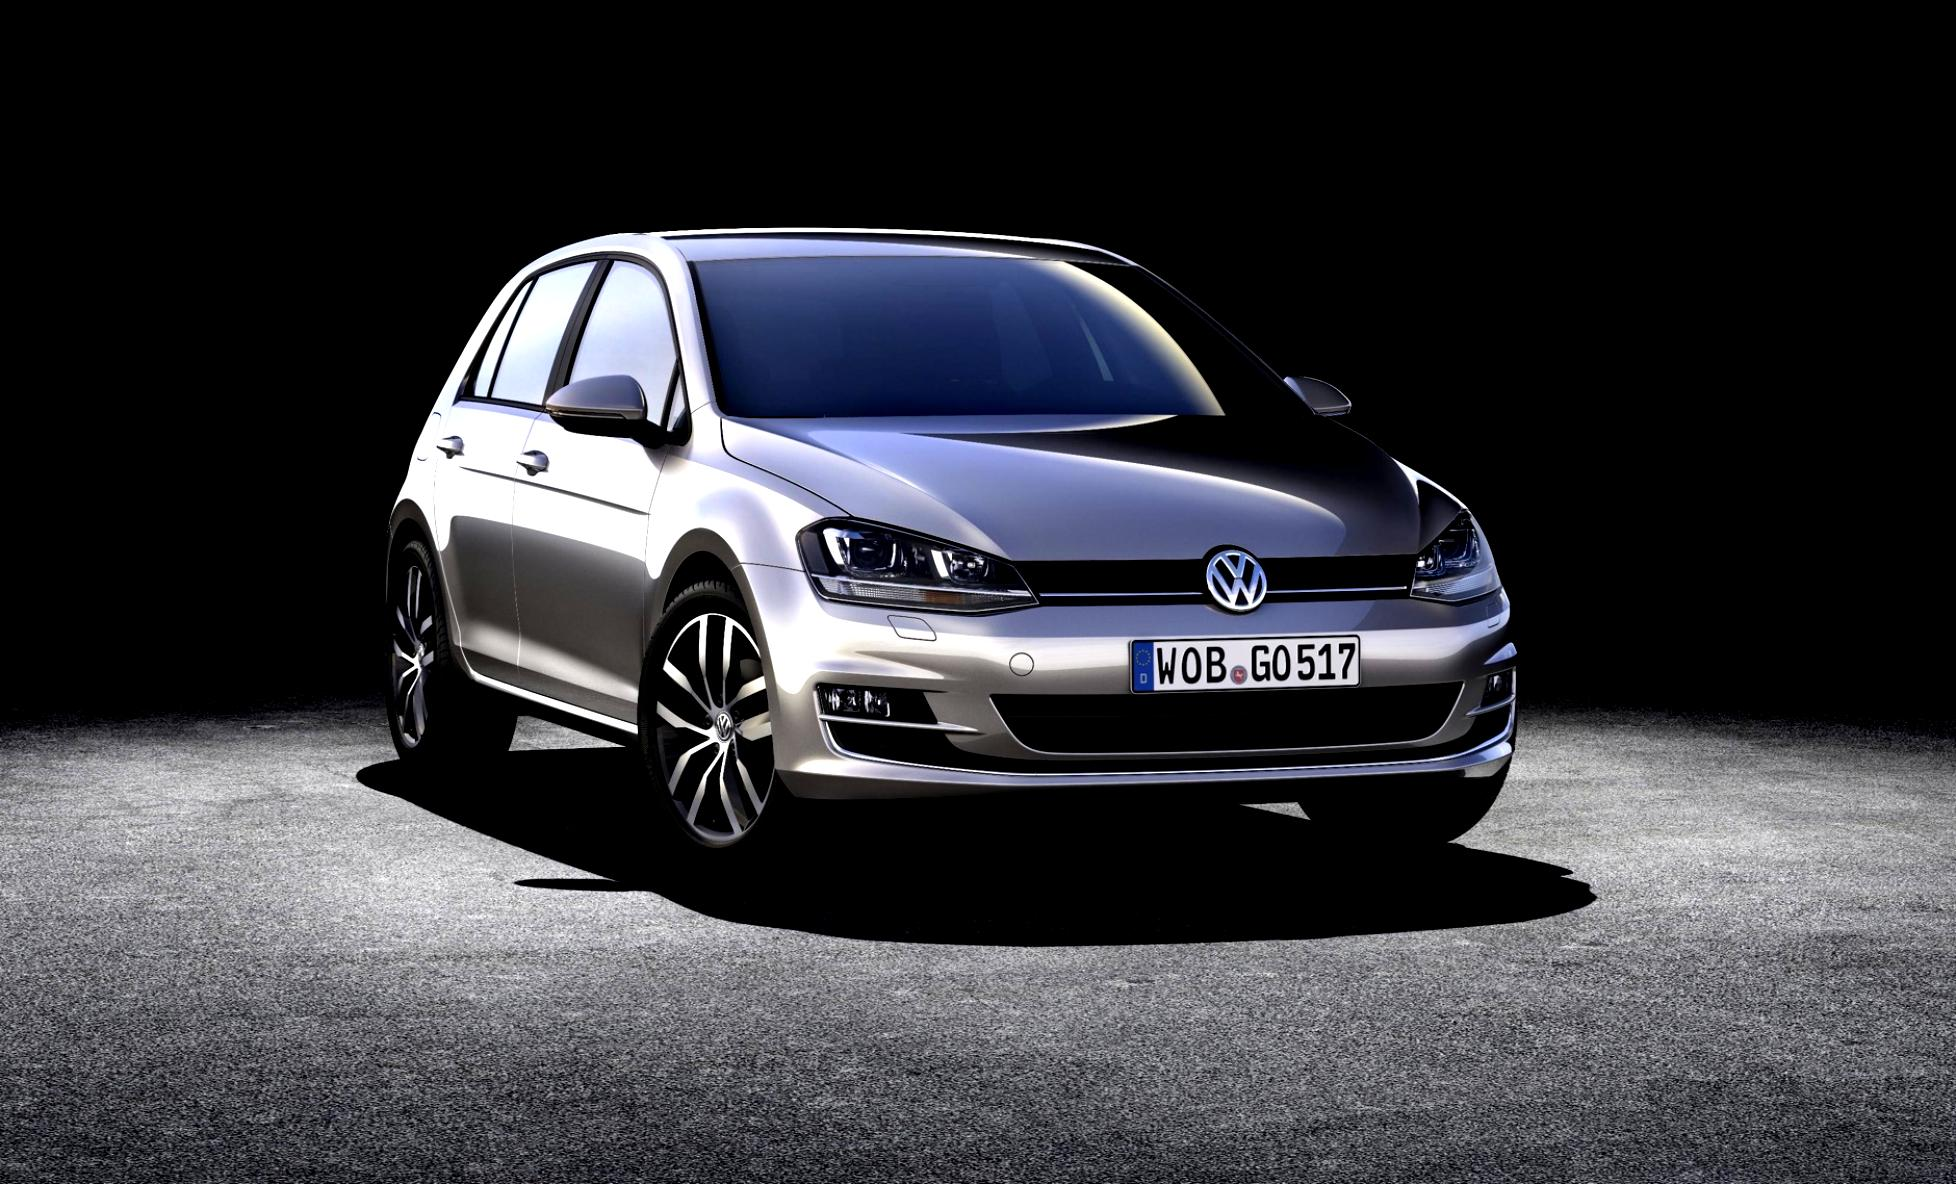 Volkswagen Golf VII 5 Doors 2012 #4